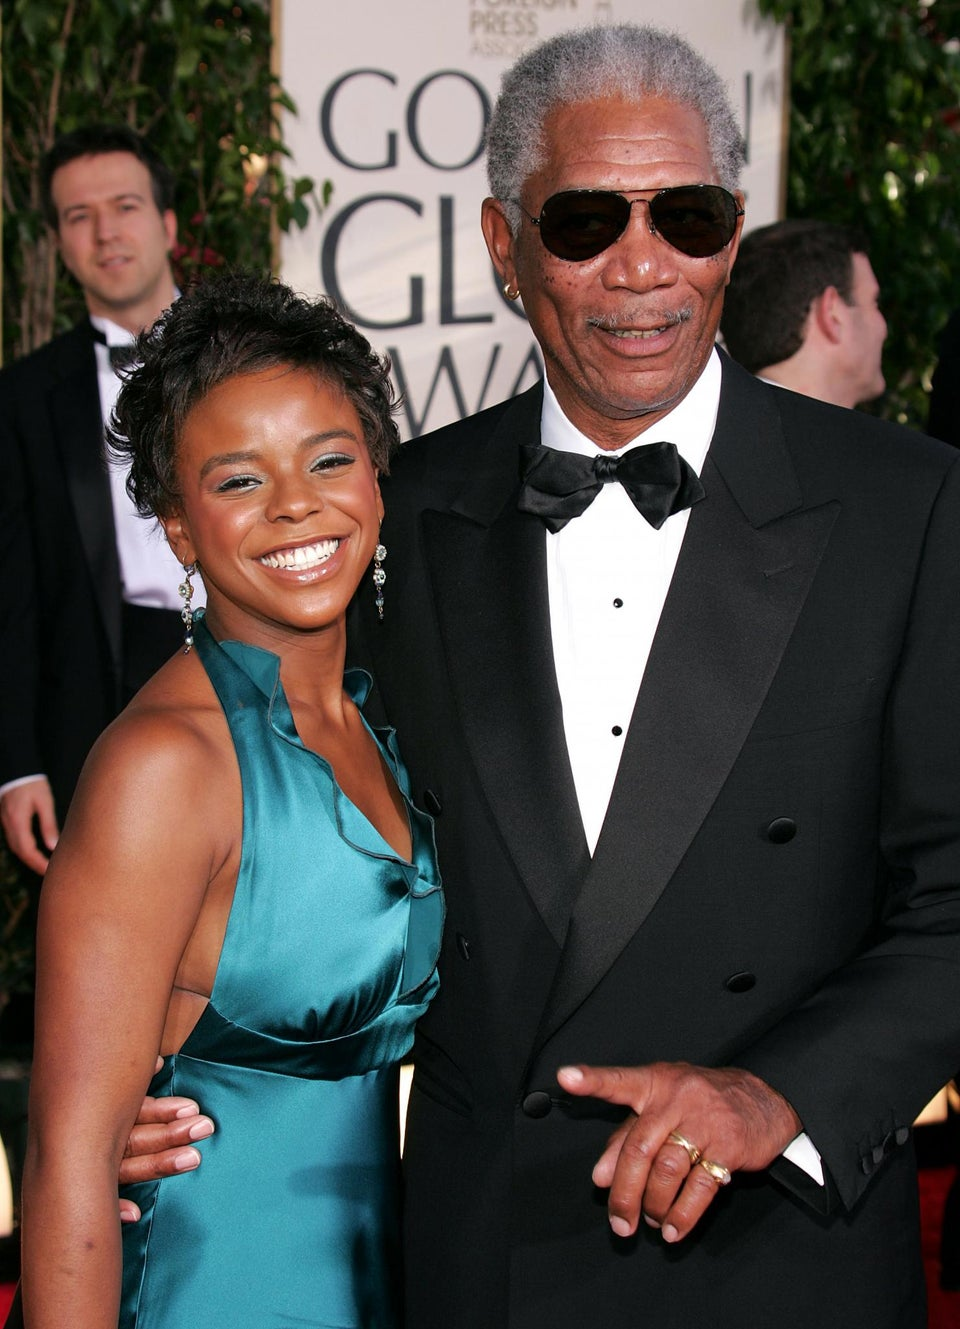 Witness Shares Last Words From Morgan Freeman's Granddaughter Before She Was Murdered